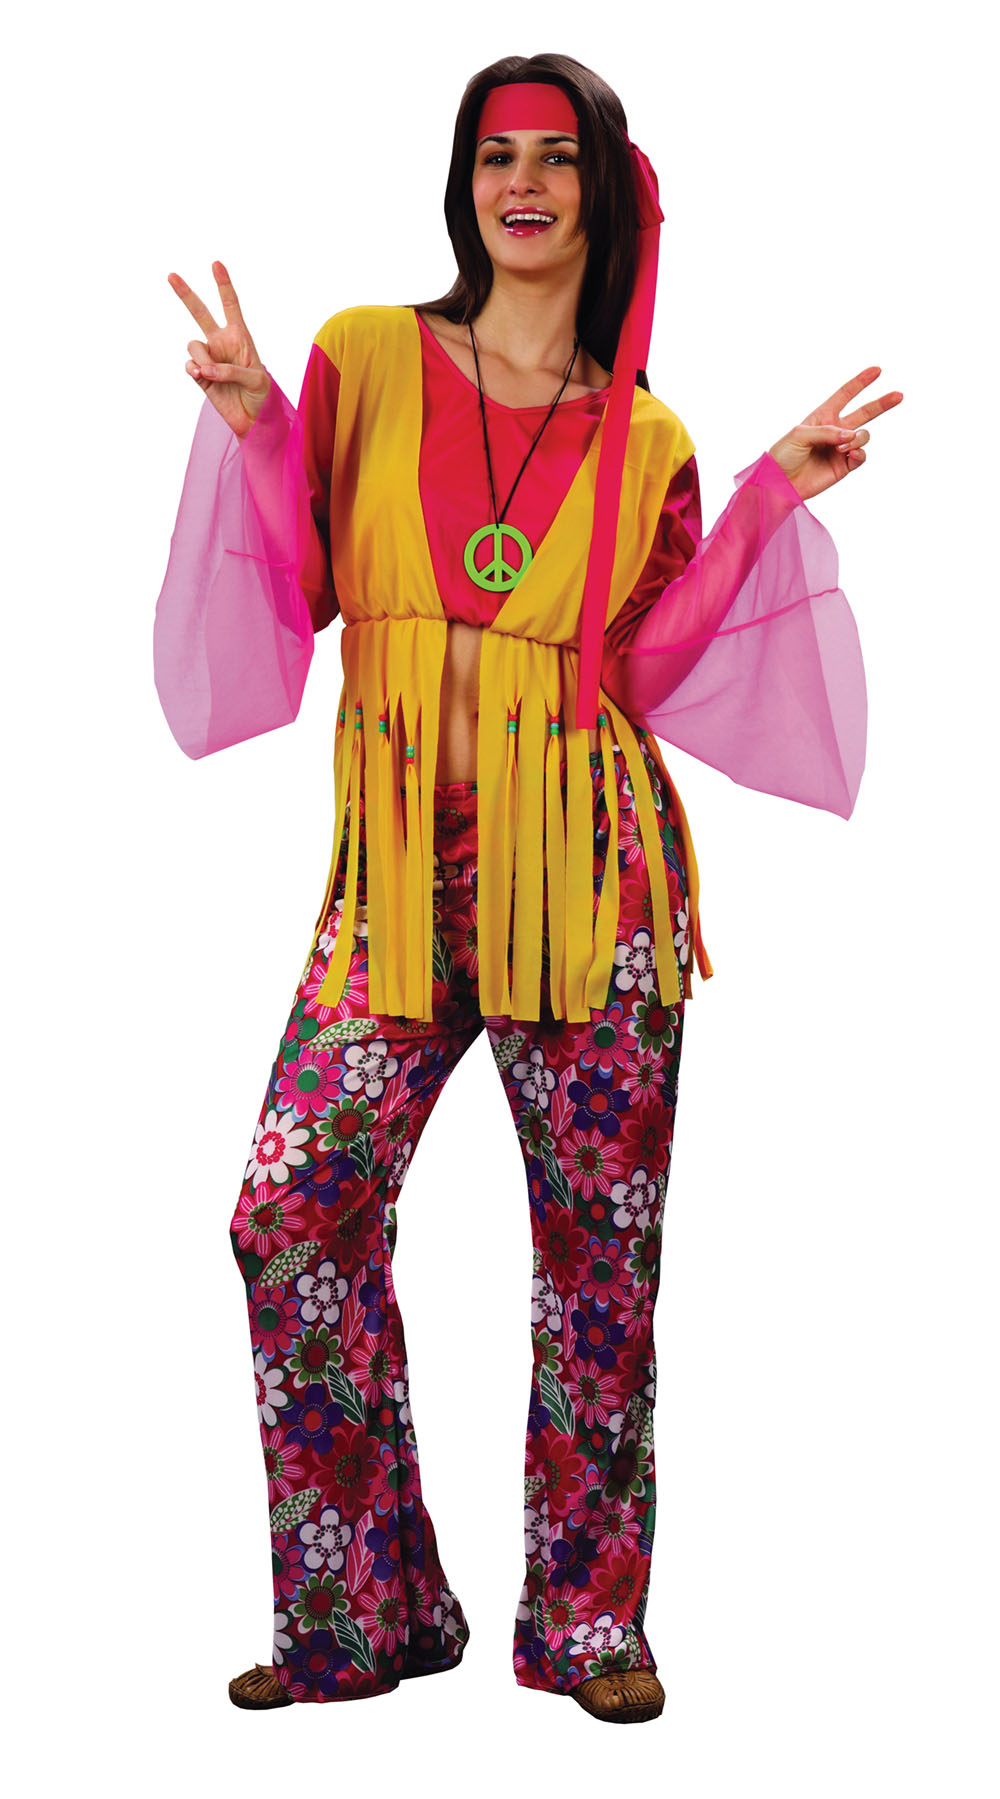 ladies trouser outfit hippy 1970 39 s flower power fancy dress costume party outfit ebay. Black Bedroom Furniture Sets. Home Design Ideas